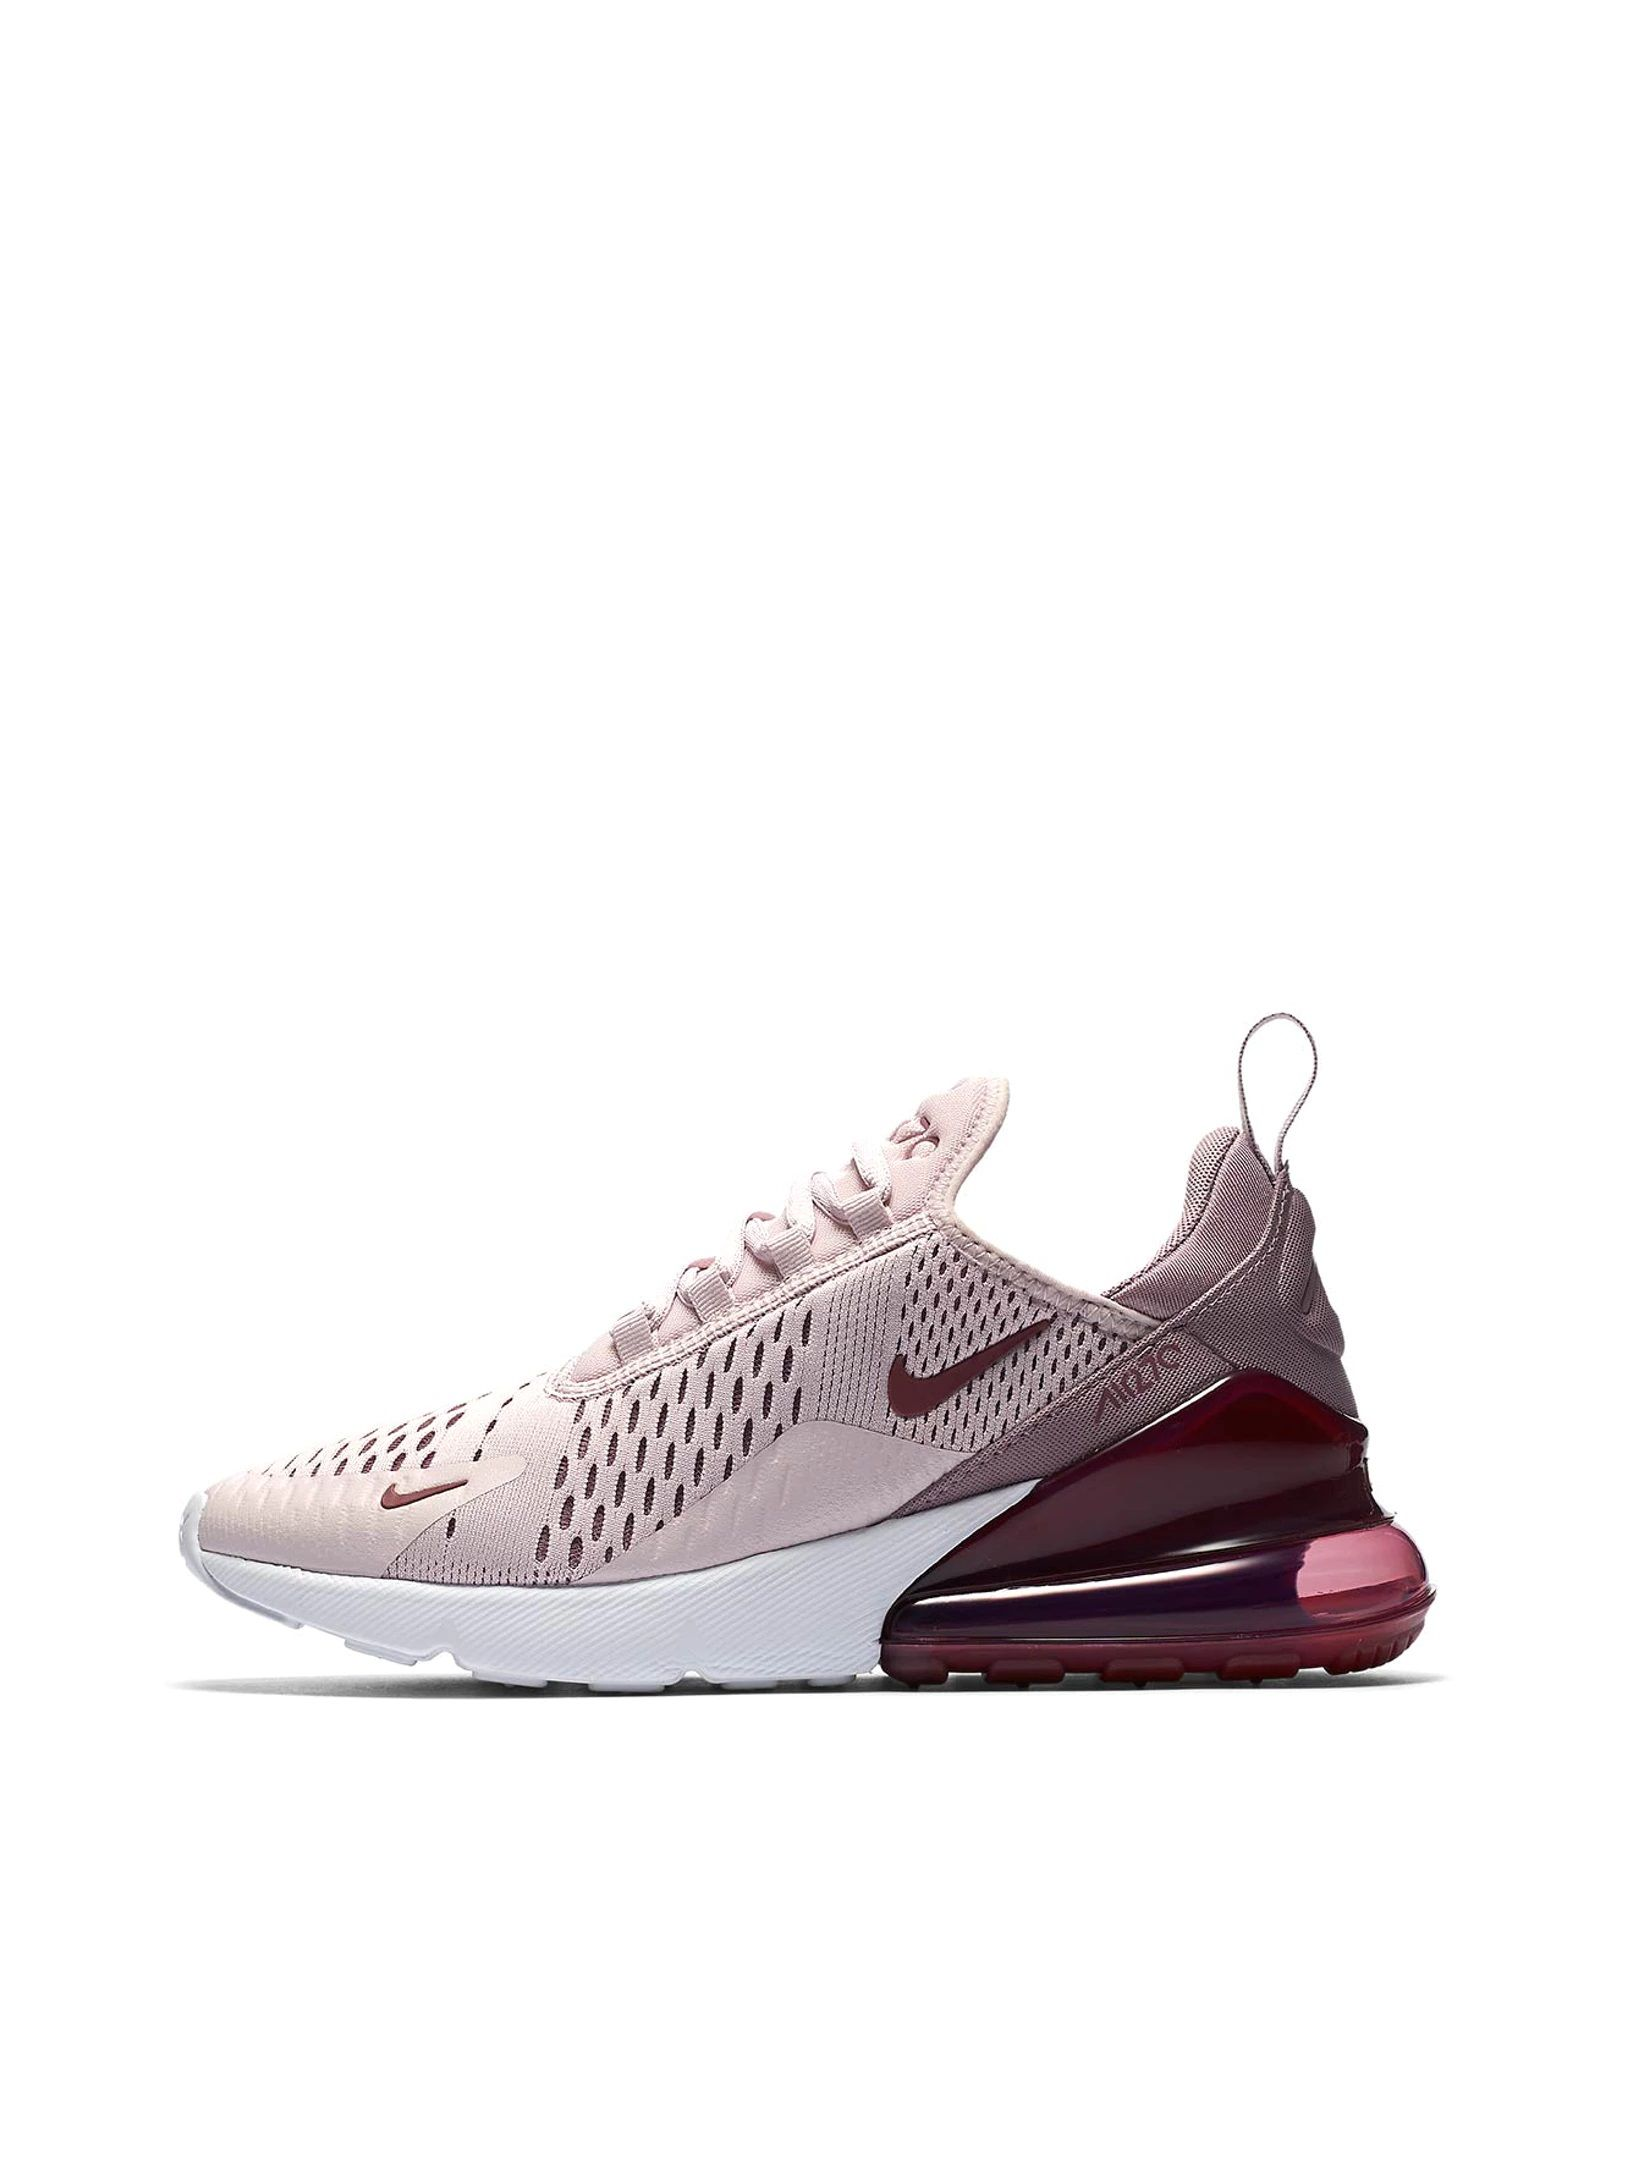 2950e0b41 Nike Air Max 270: Barely Rose | MIS TENIS PREFERIDOS | Zapatos, Nike ...